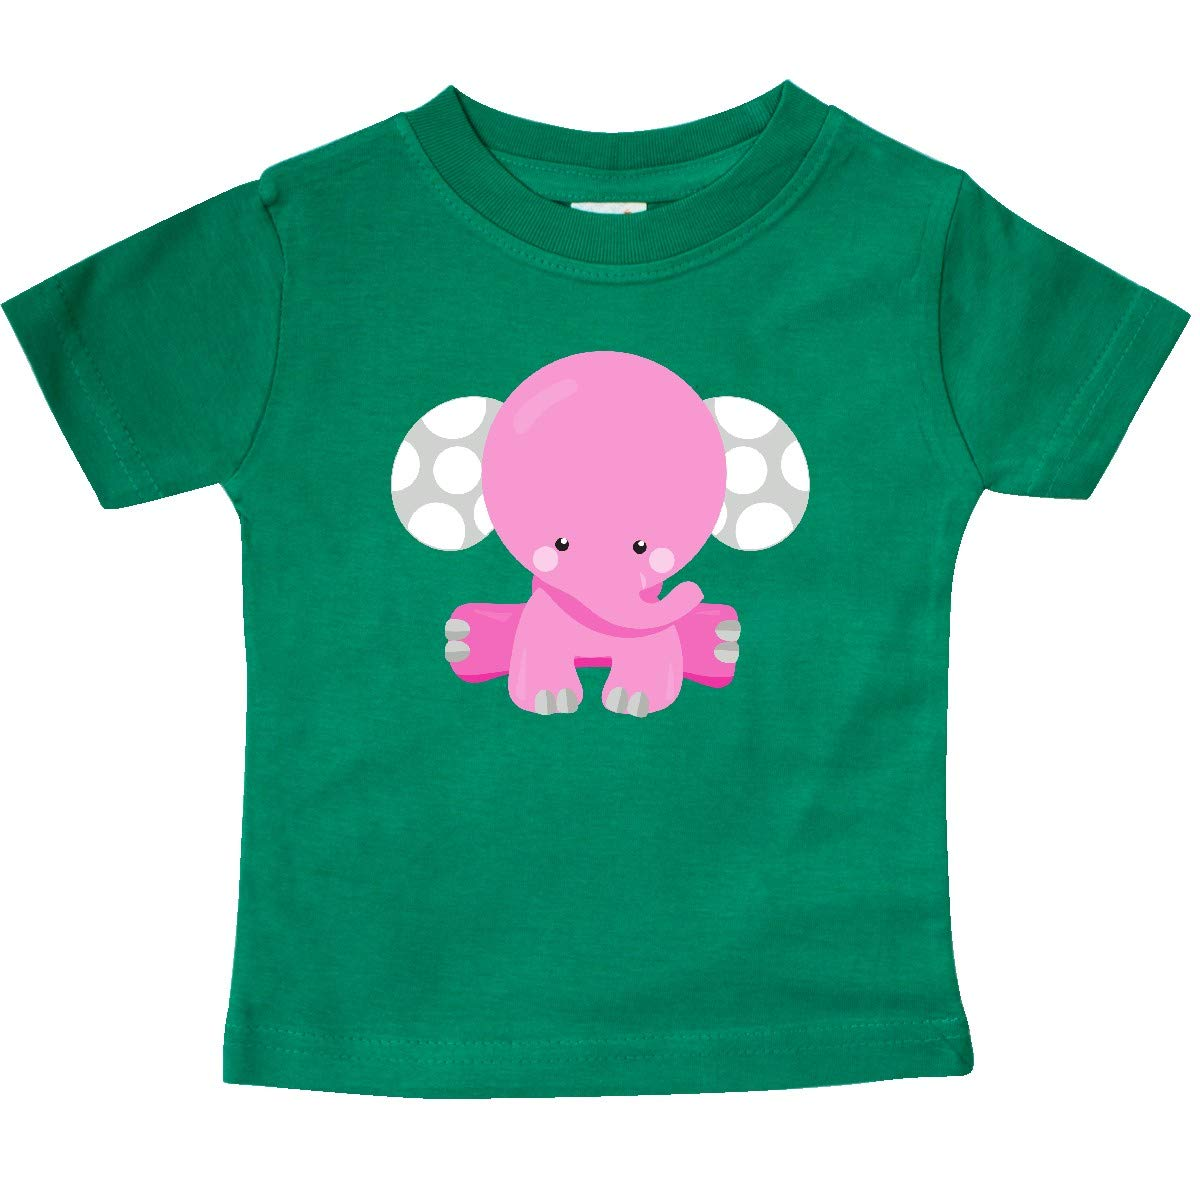 inktastic Pink Elephant with Dotted Ears Baby Elephant Baby T-Shirt